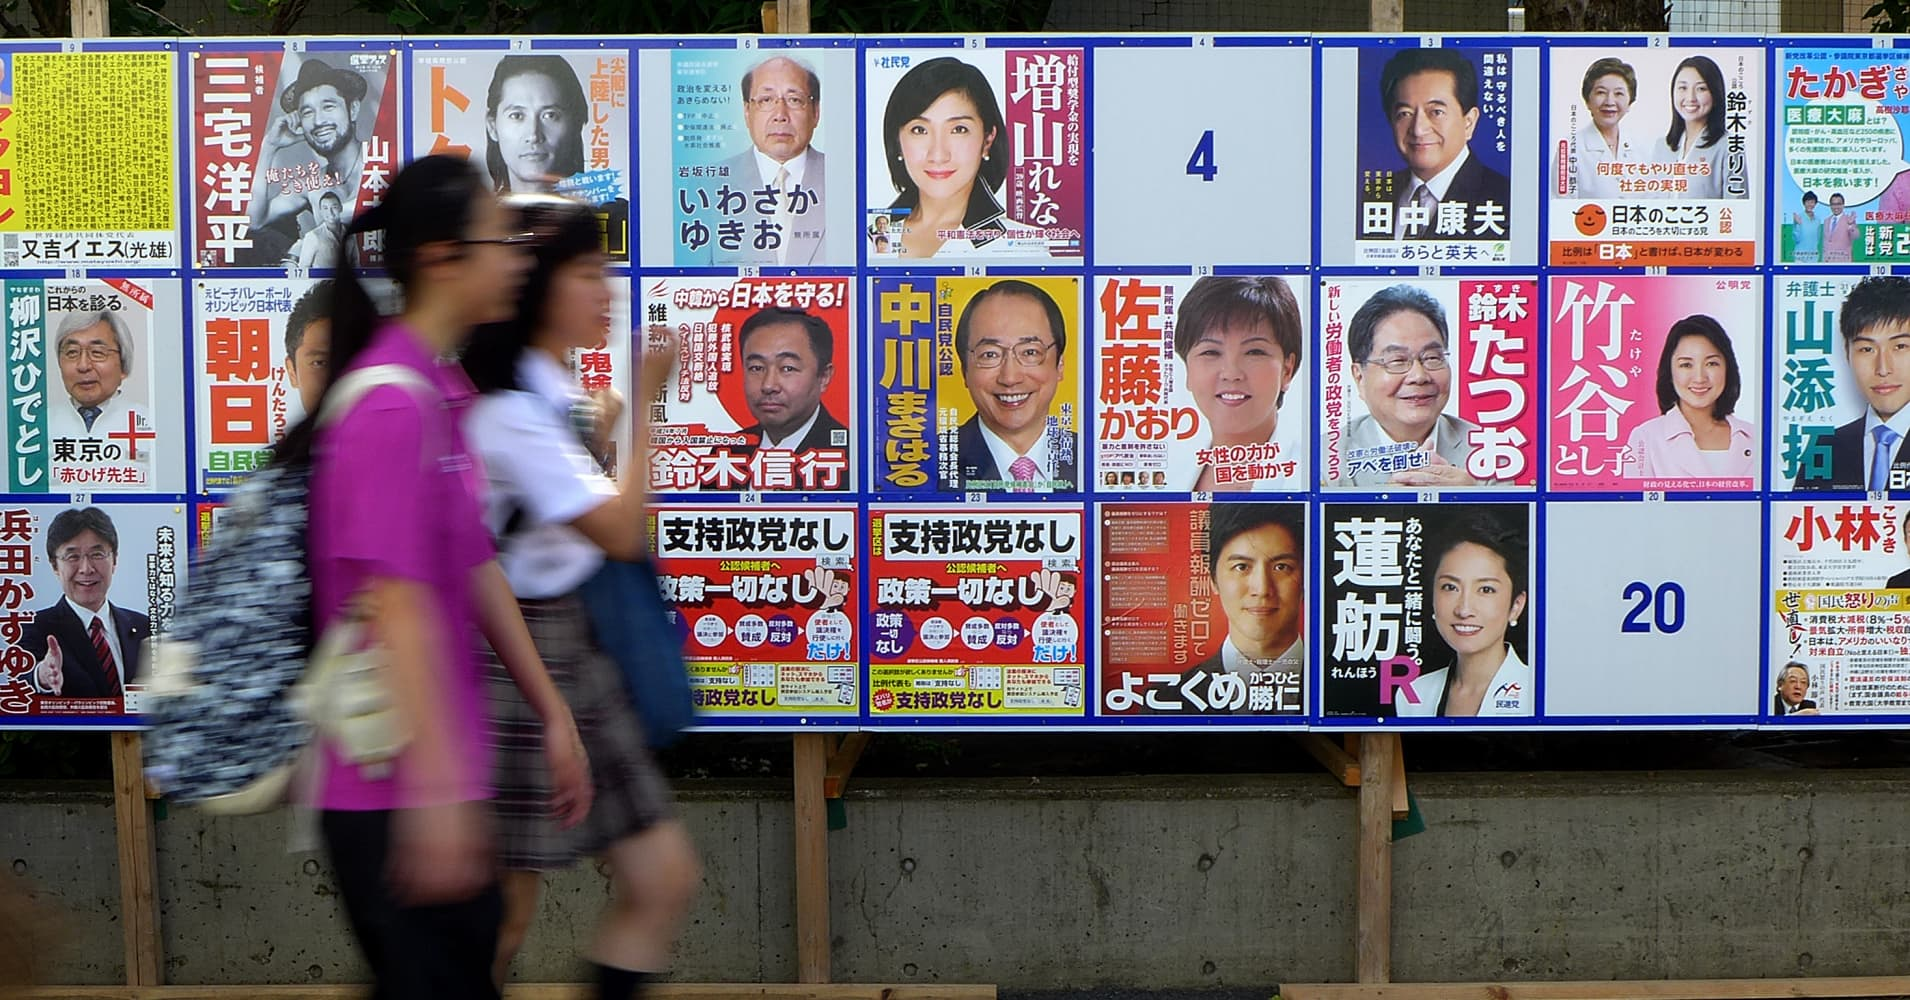 Abe's reform push to be tested in Japan parliamentary elections